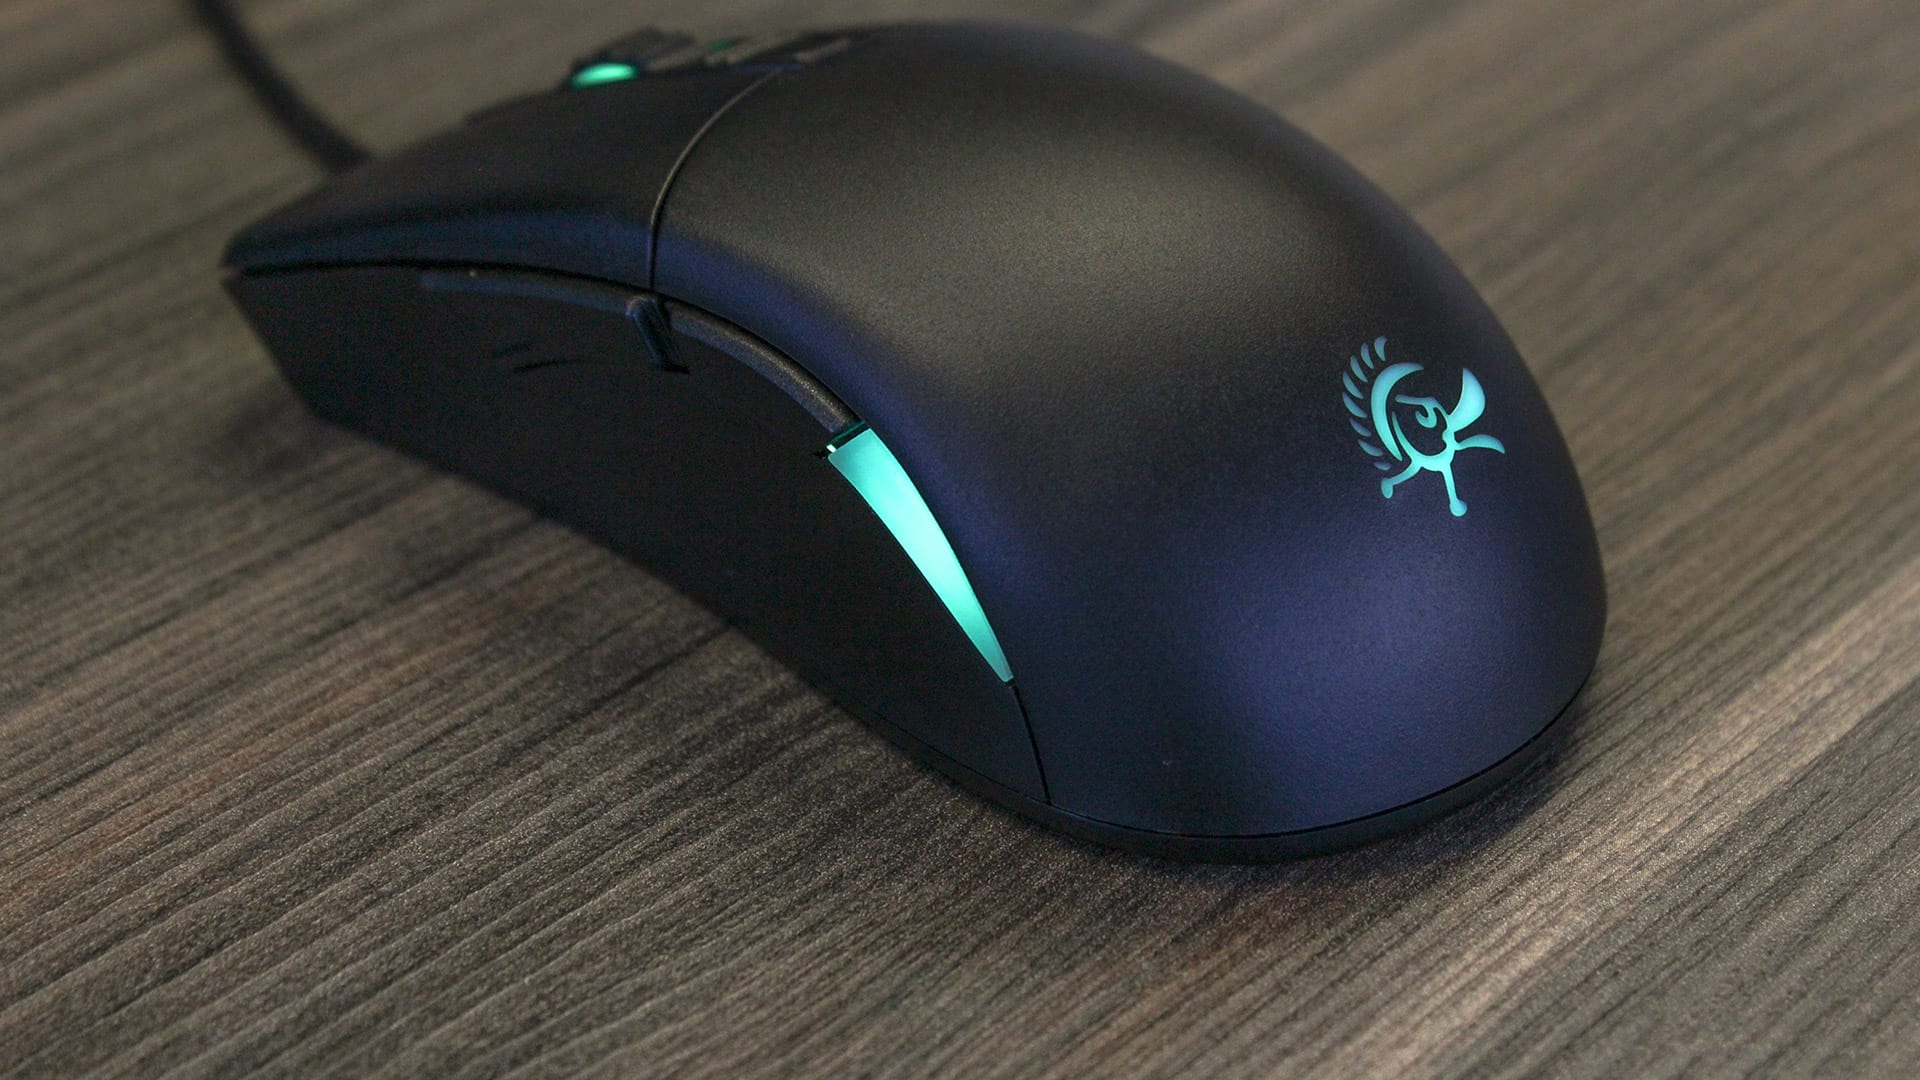 [VÍDEO] Review: Mouse Ducky Secret M, o upgrade de um mouse excelente